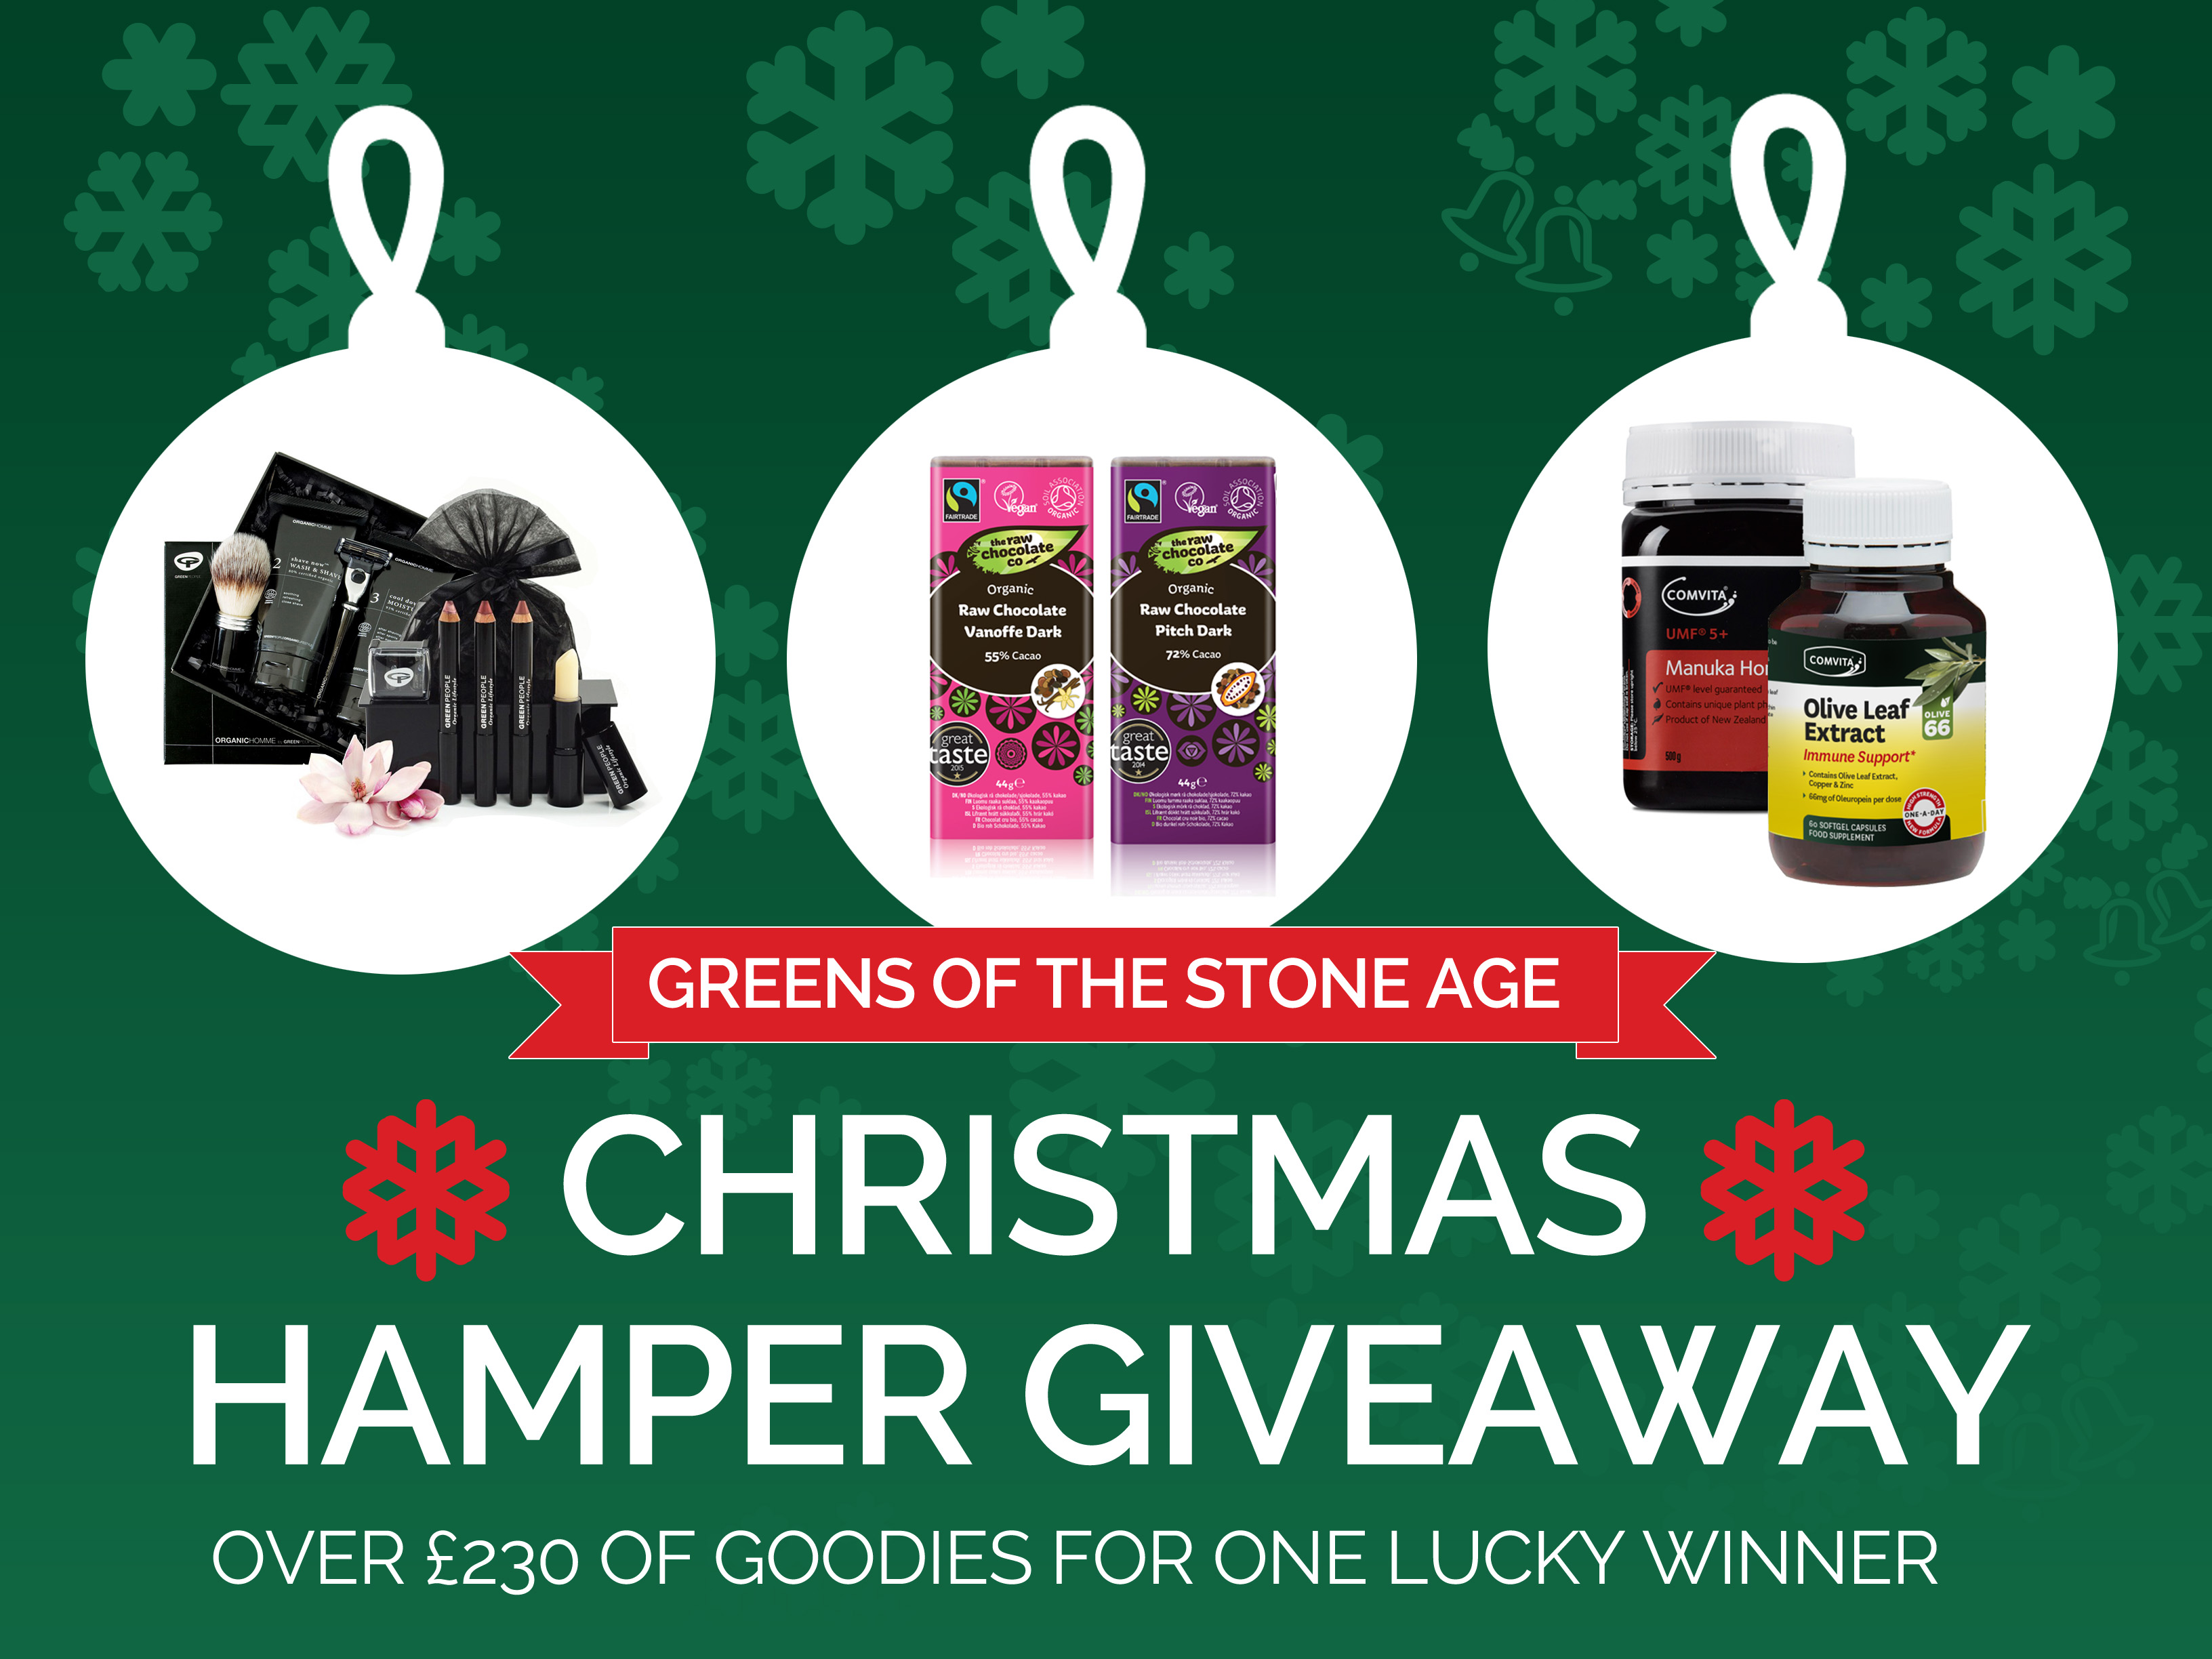 greens-of-the-stone-age-christmas-hamper-giveaway-2